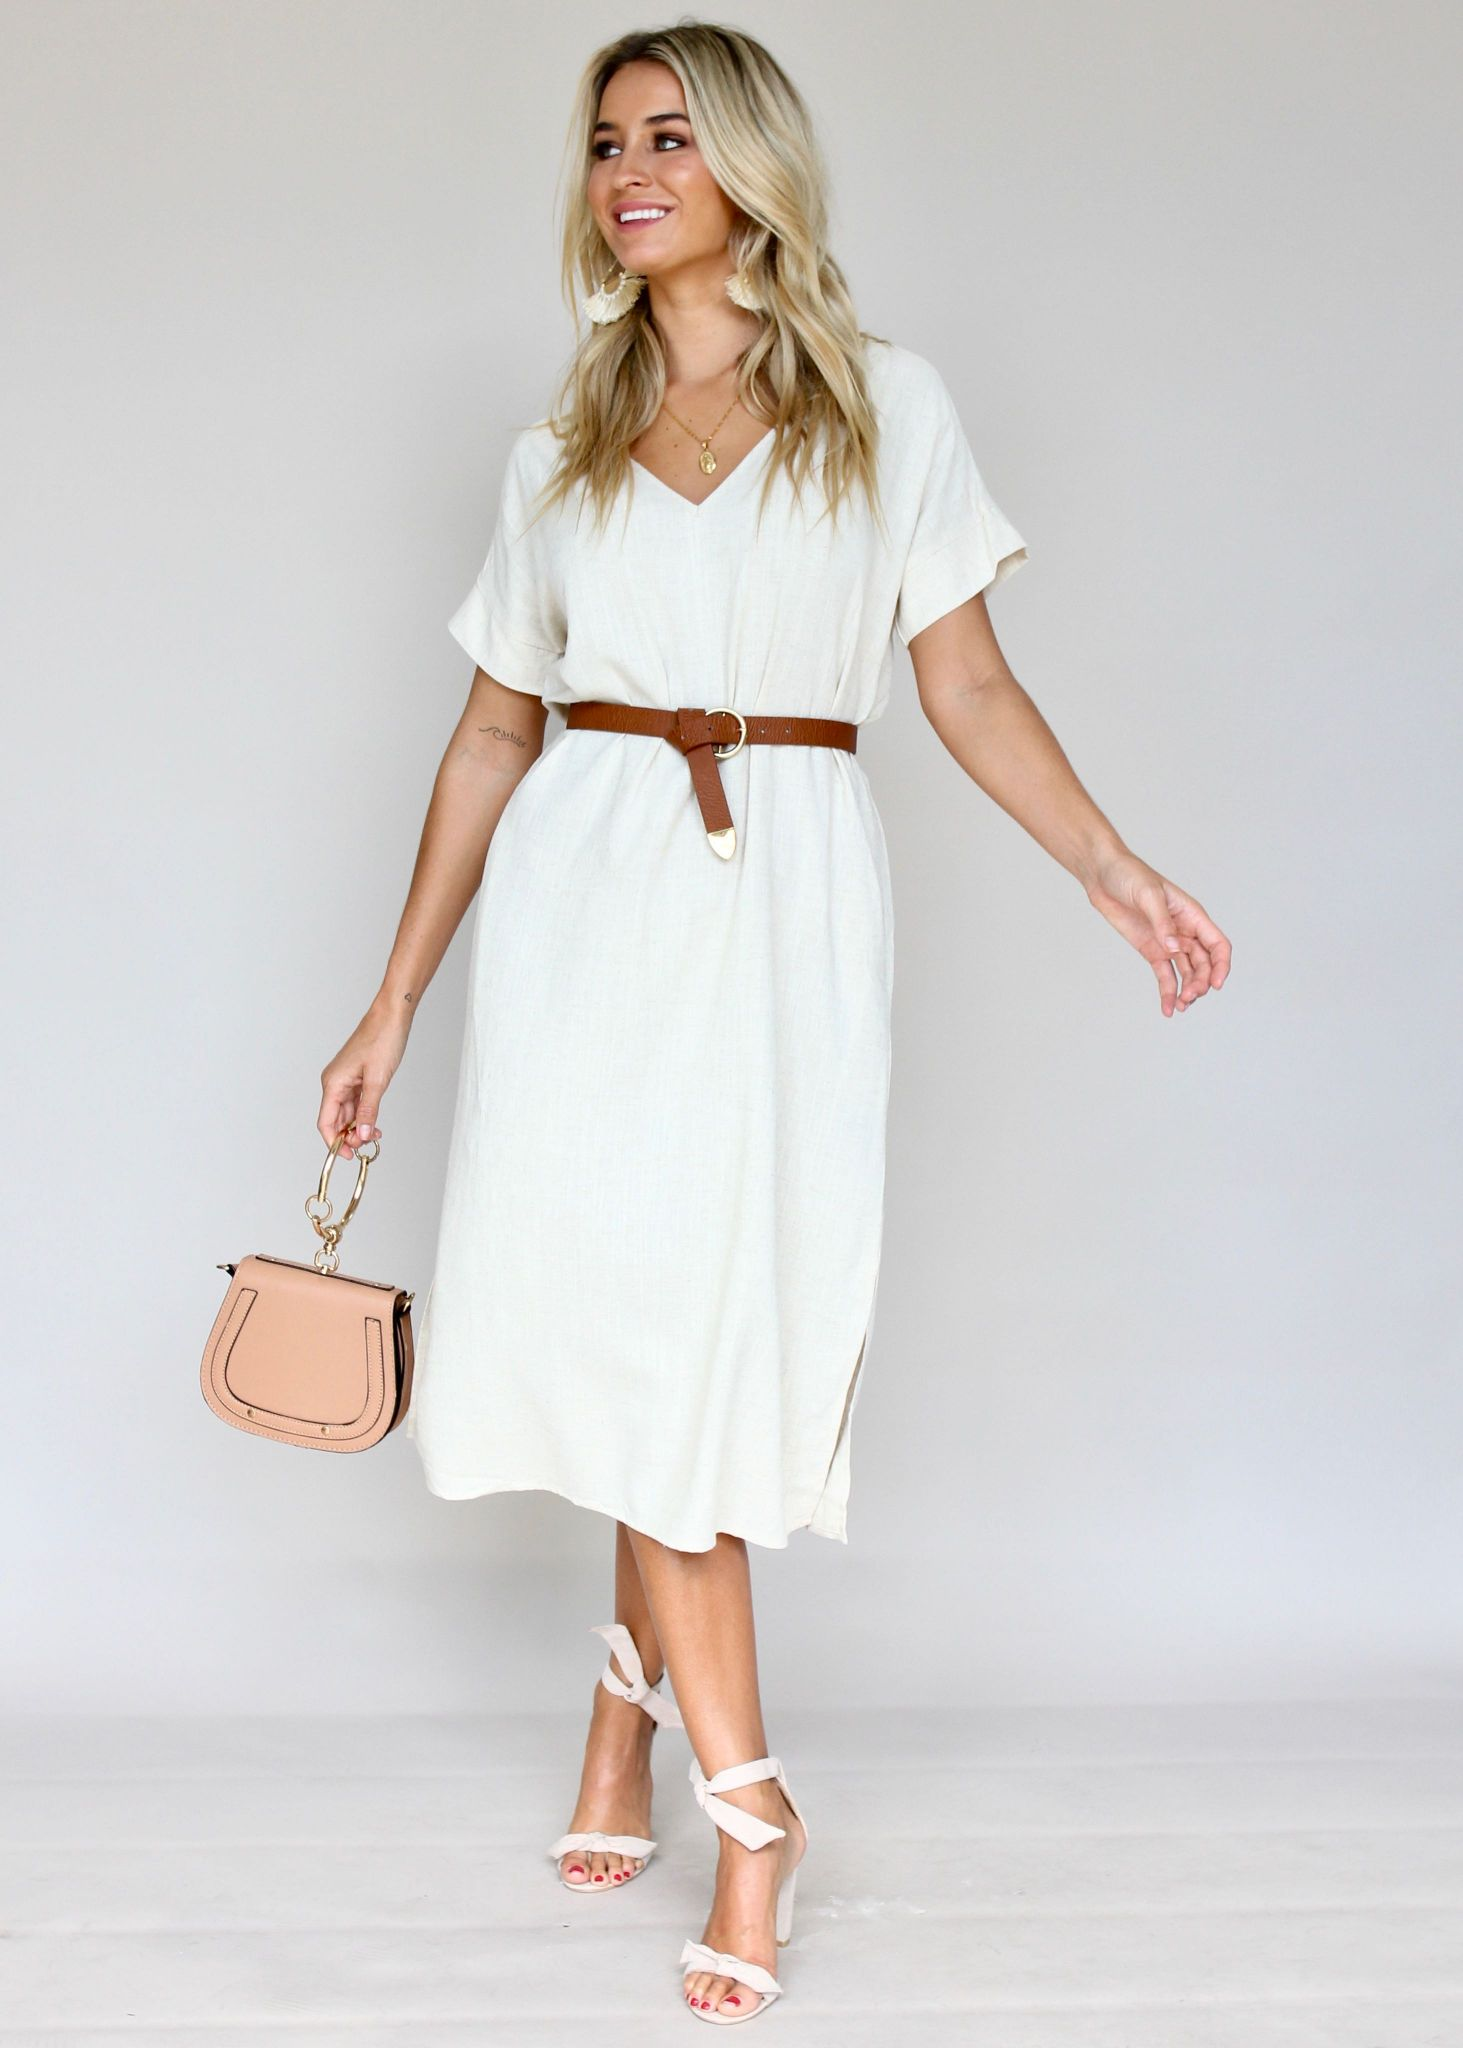 Get Right Midi Dress - Beige